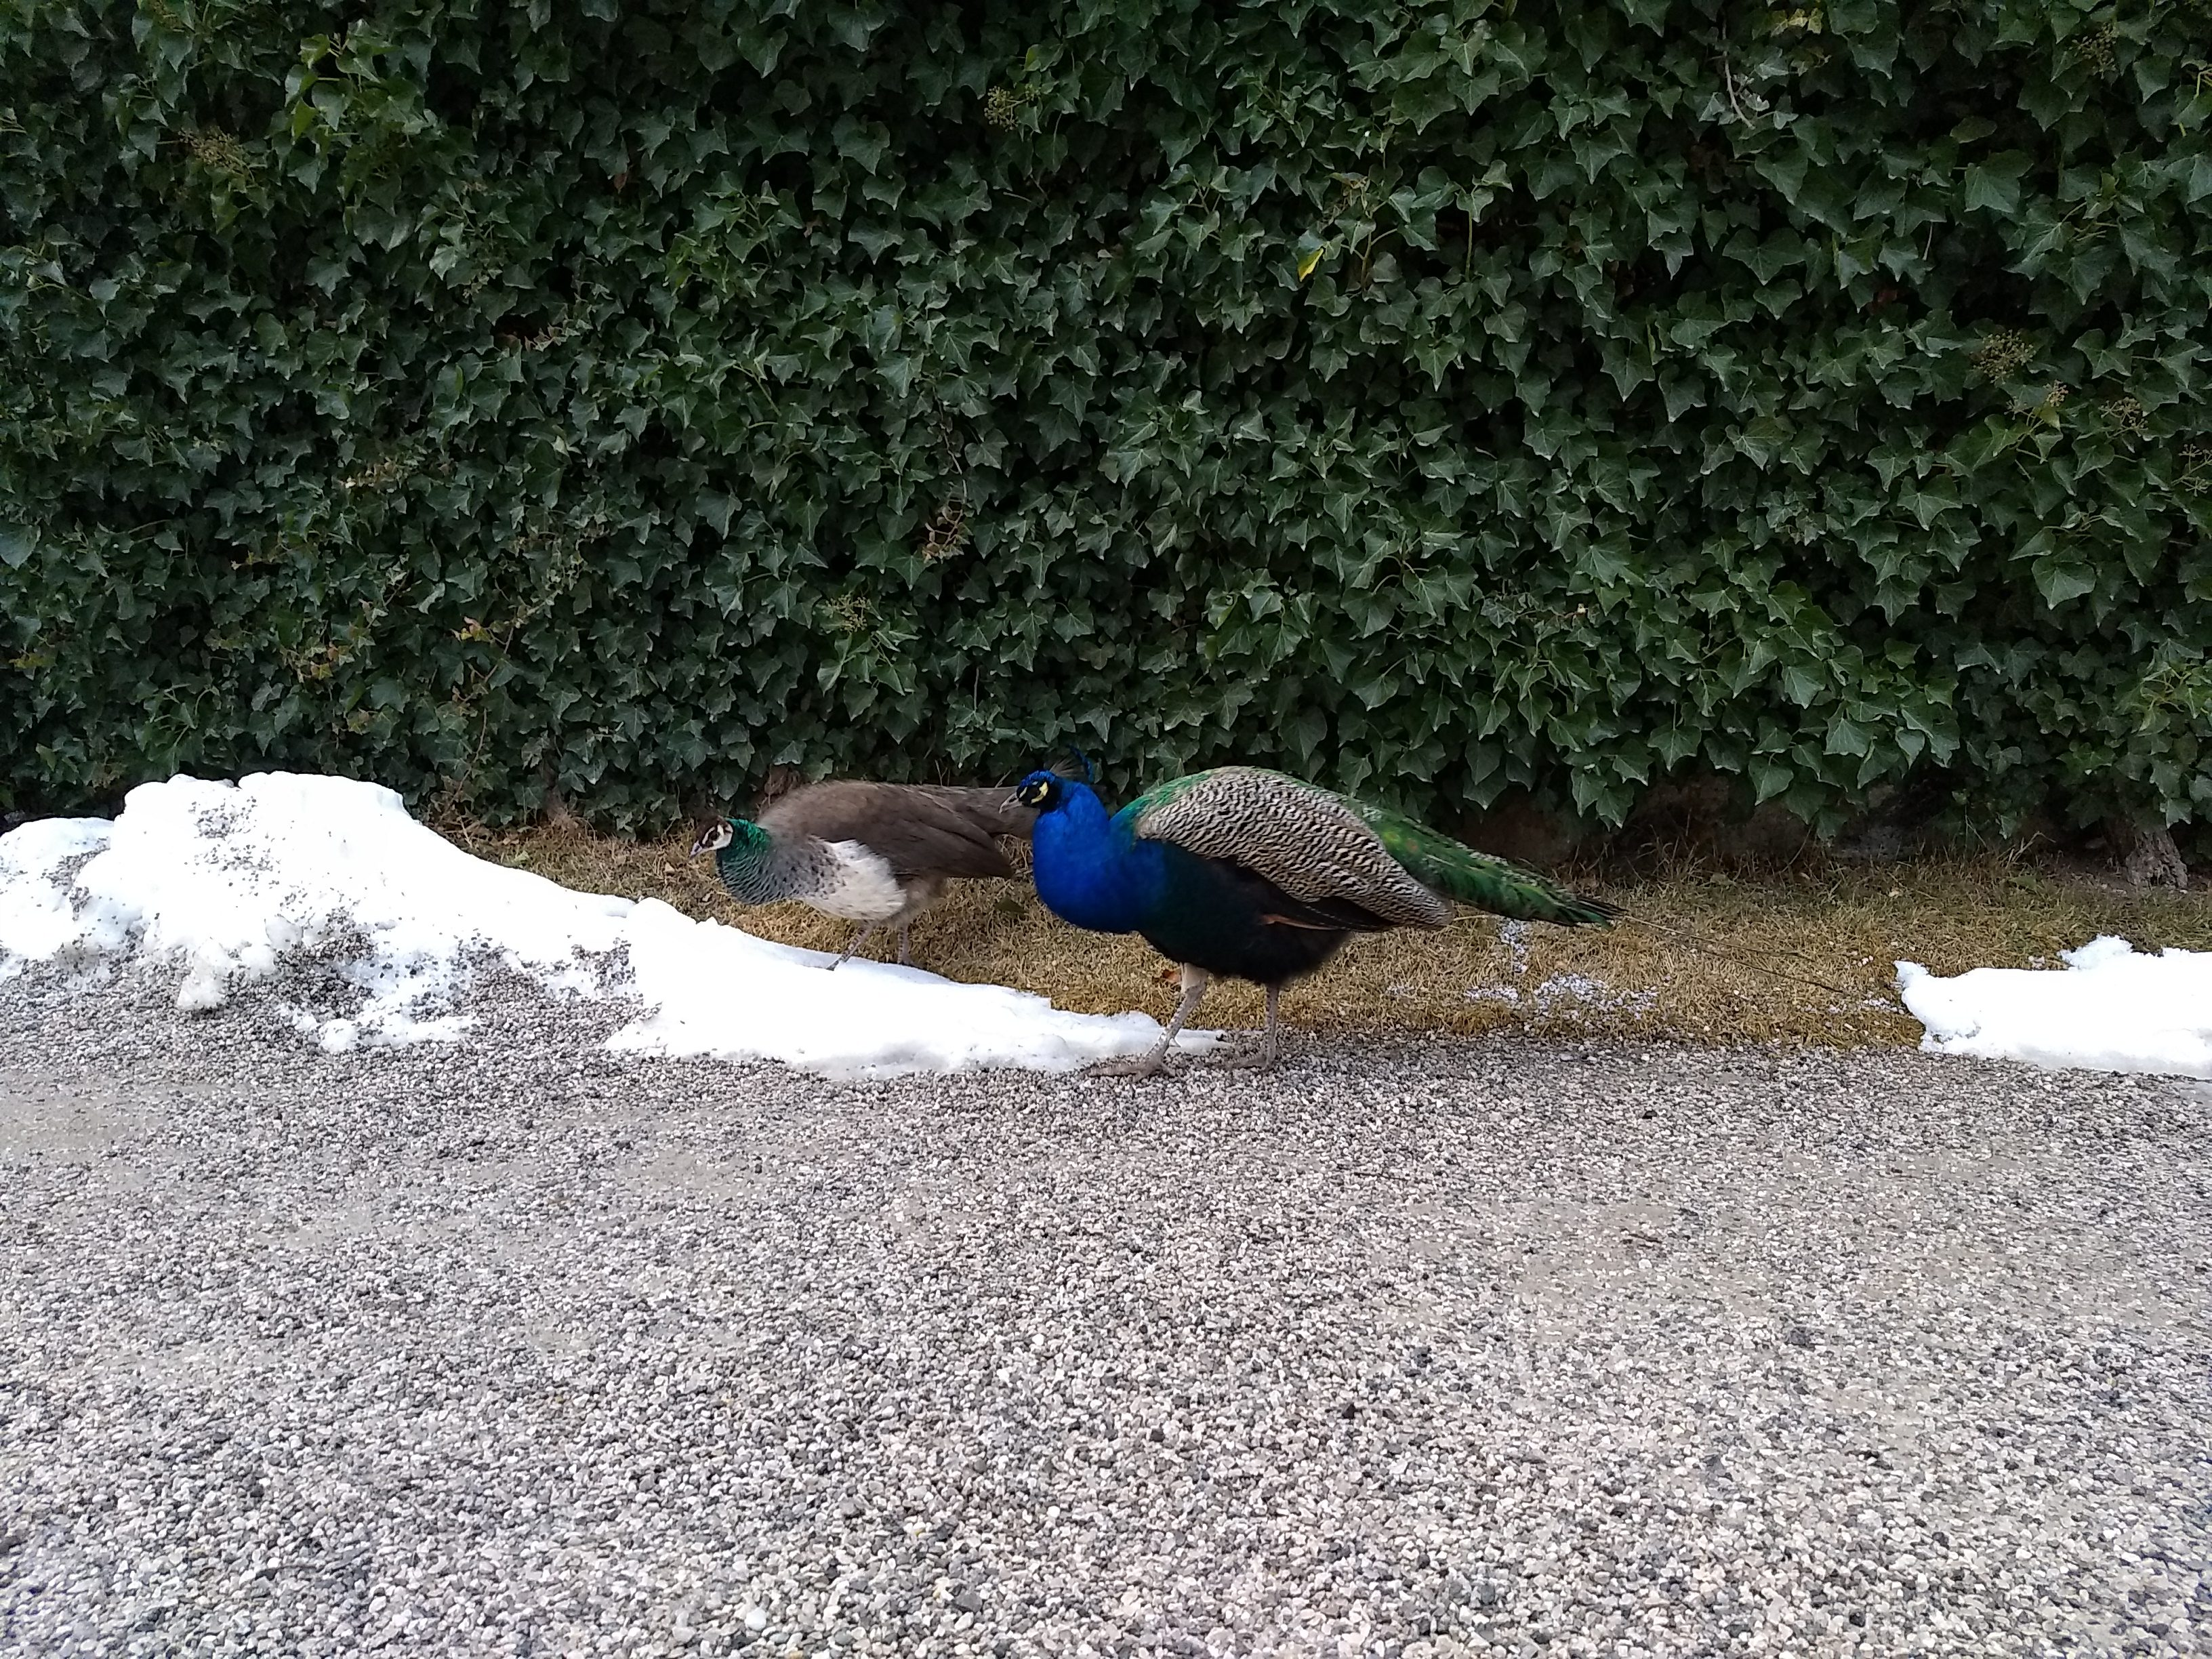 Two peacocks with their tails down walking across gravel with a snowbank and a holly or ivy hedge in the background